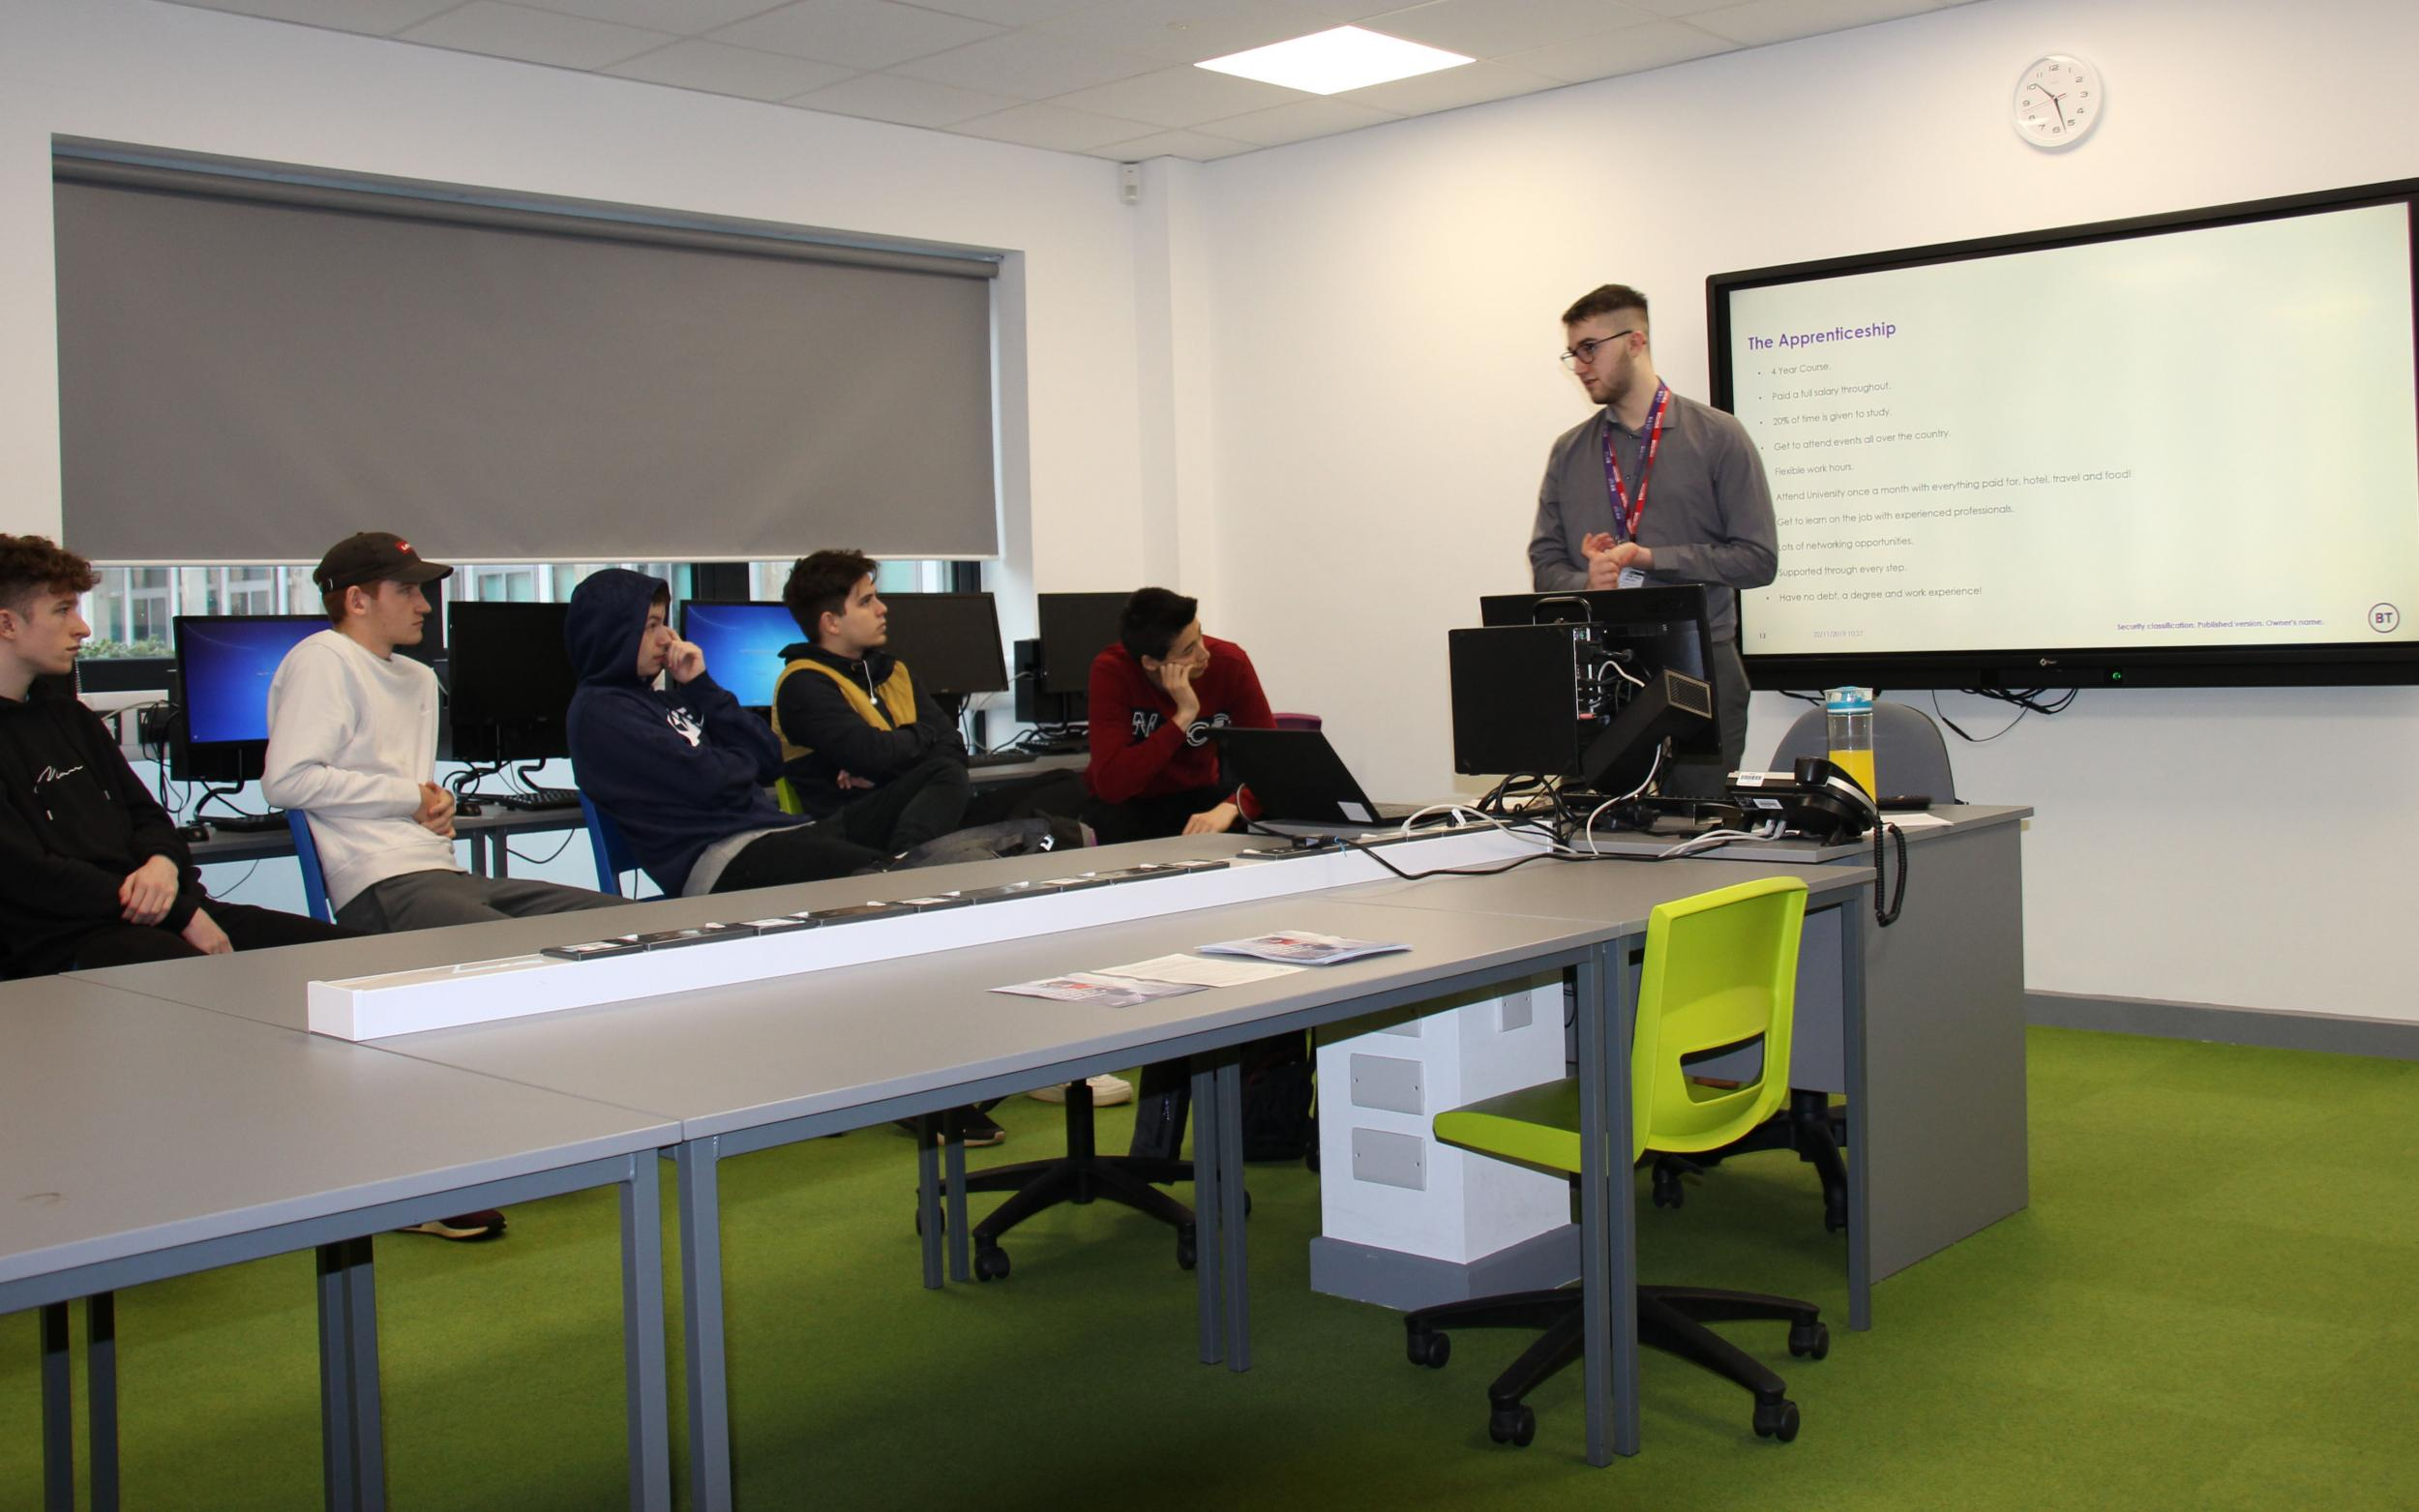 Will Manchip presenting to class of students in computing classroom